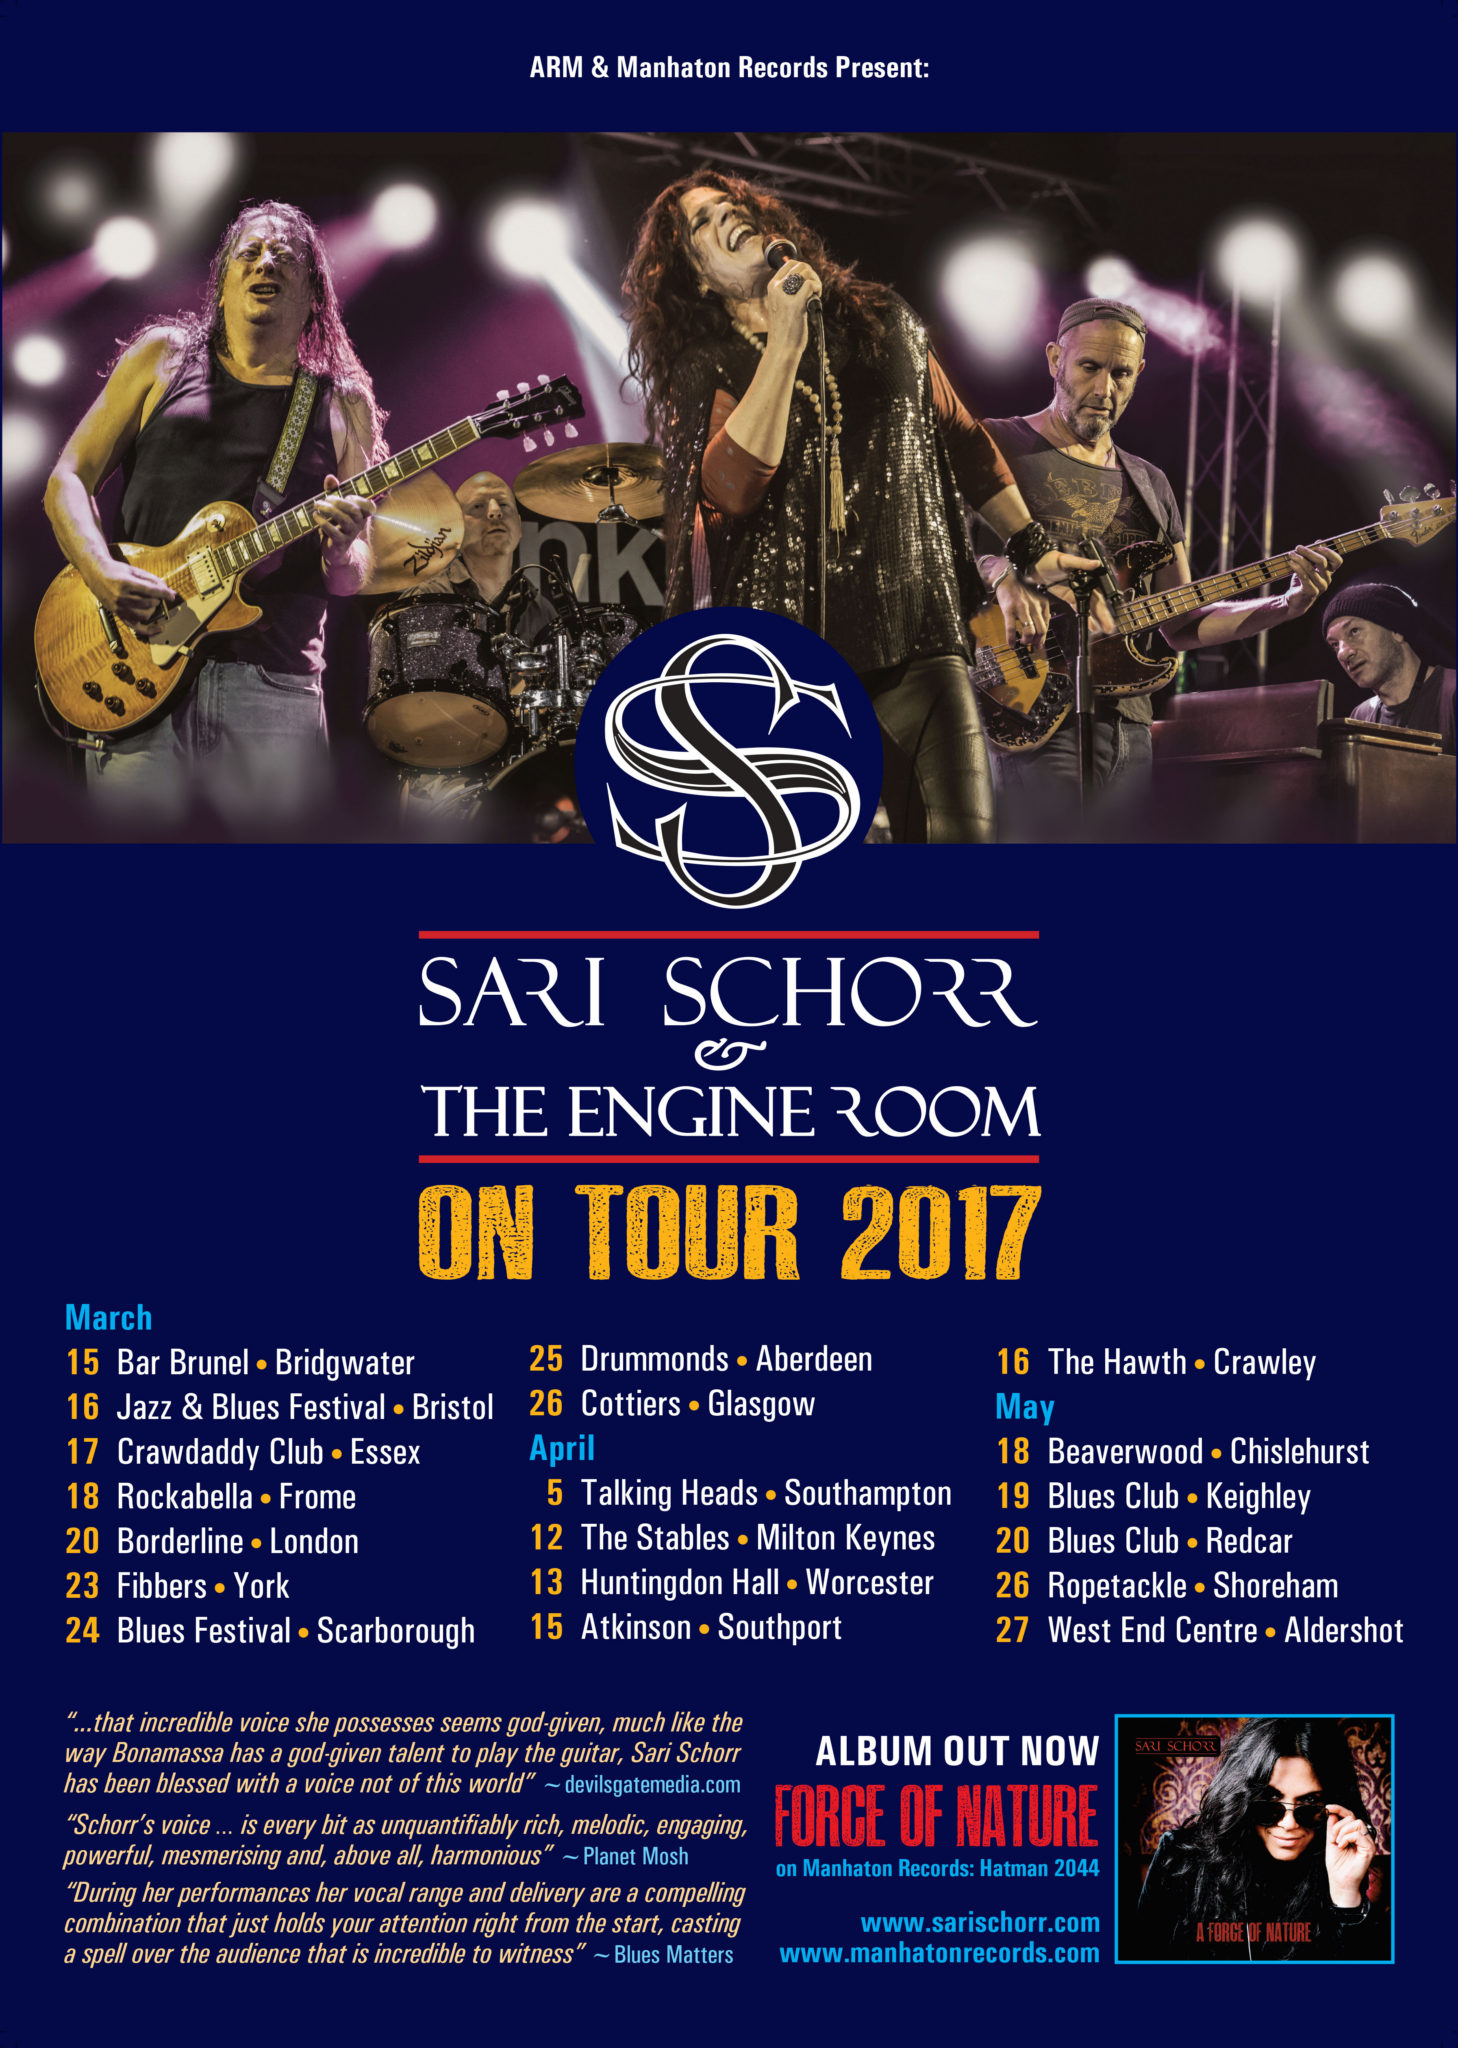 sarischorr tourposter